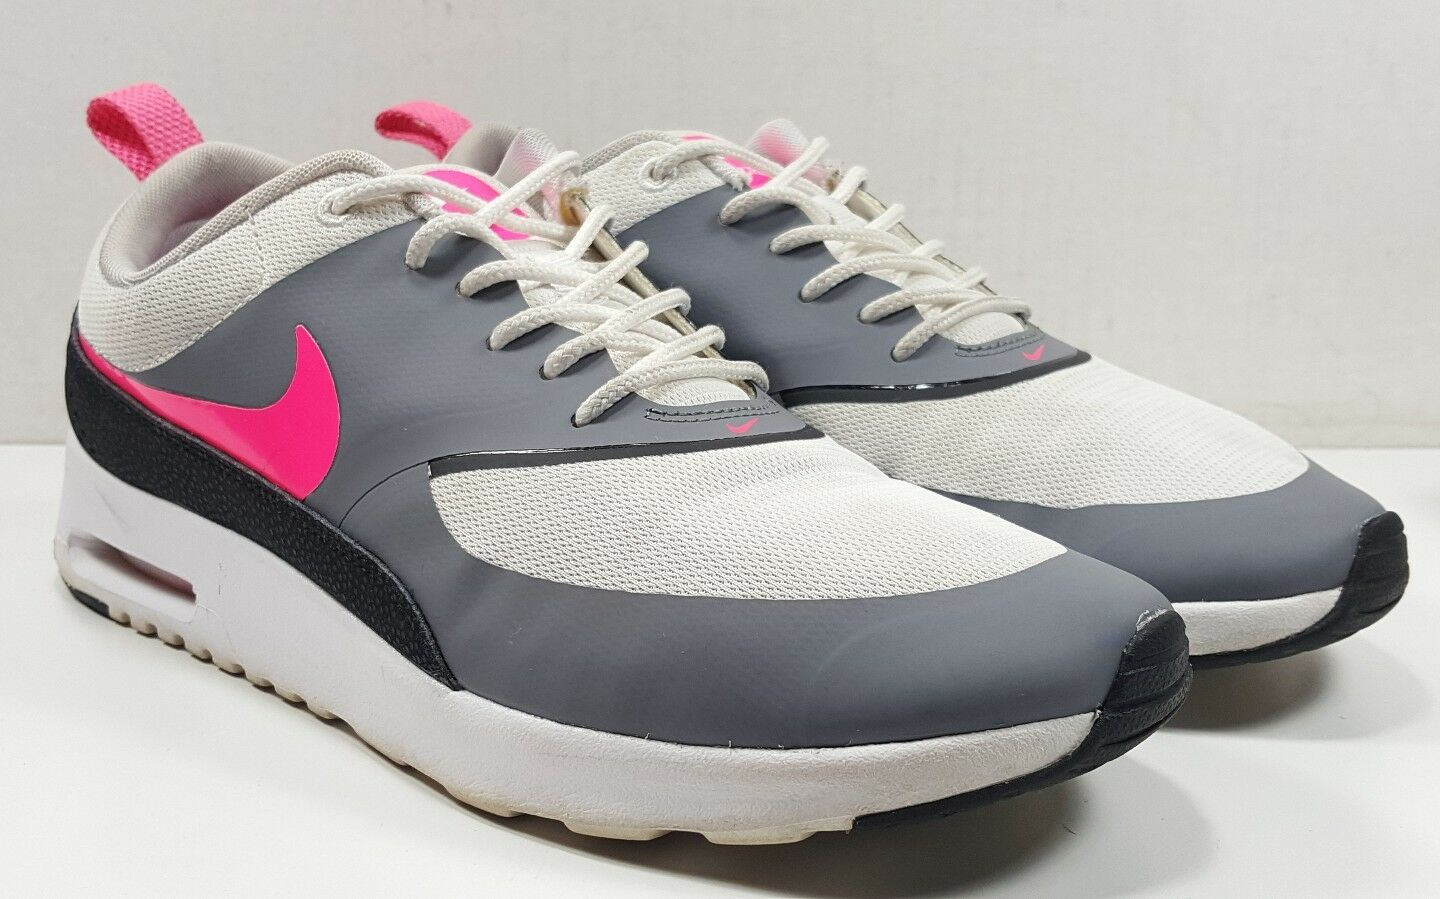 Nike Air Max Pink/Black/Cool Thea 599409-100 Running Shoes White/Hyper Pink/Black/Cool Max Grey 9.5* 411d04